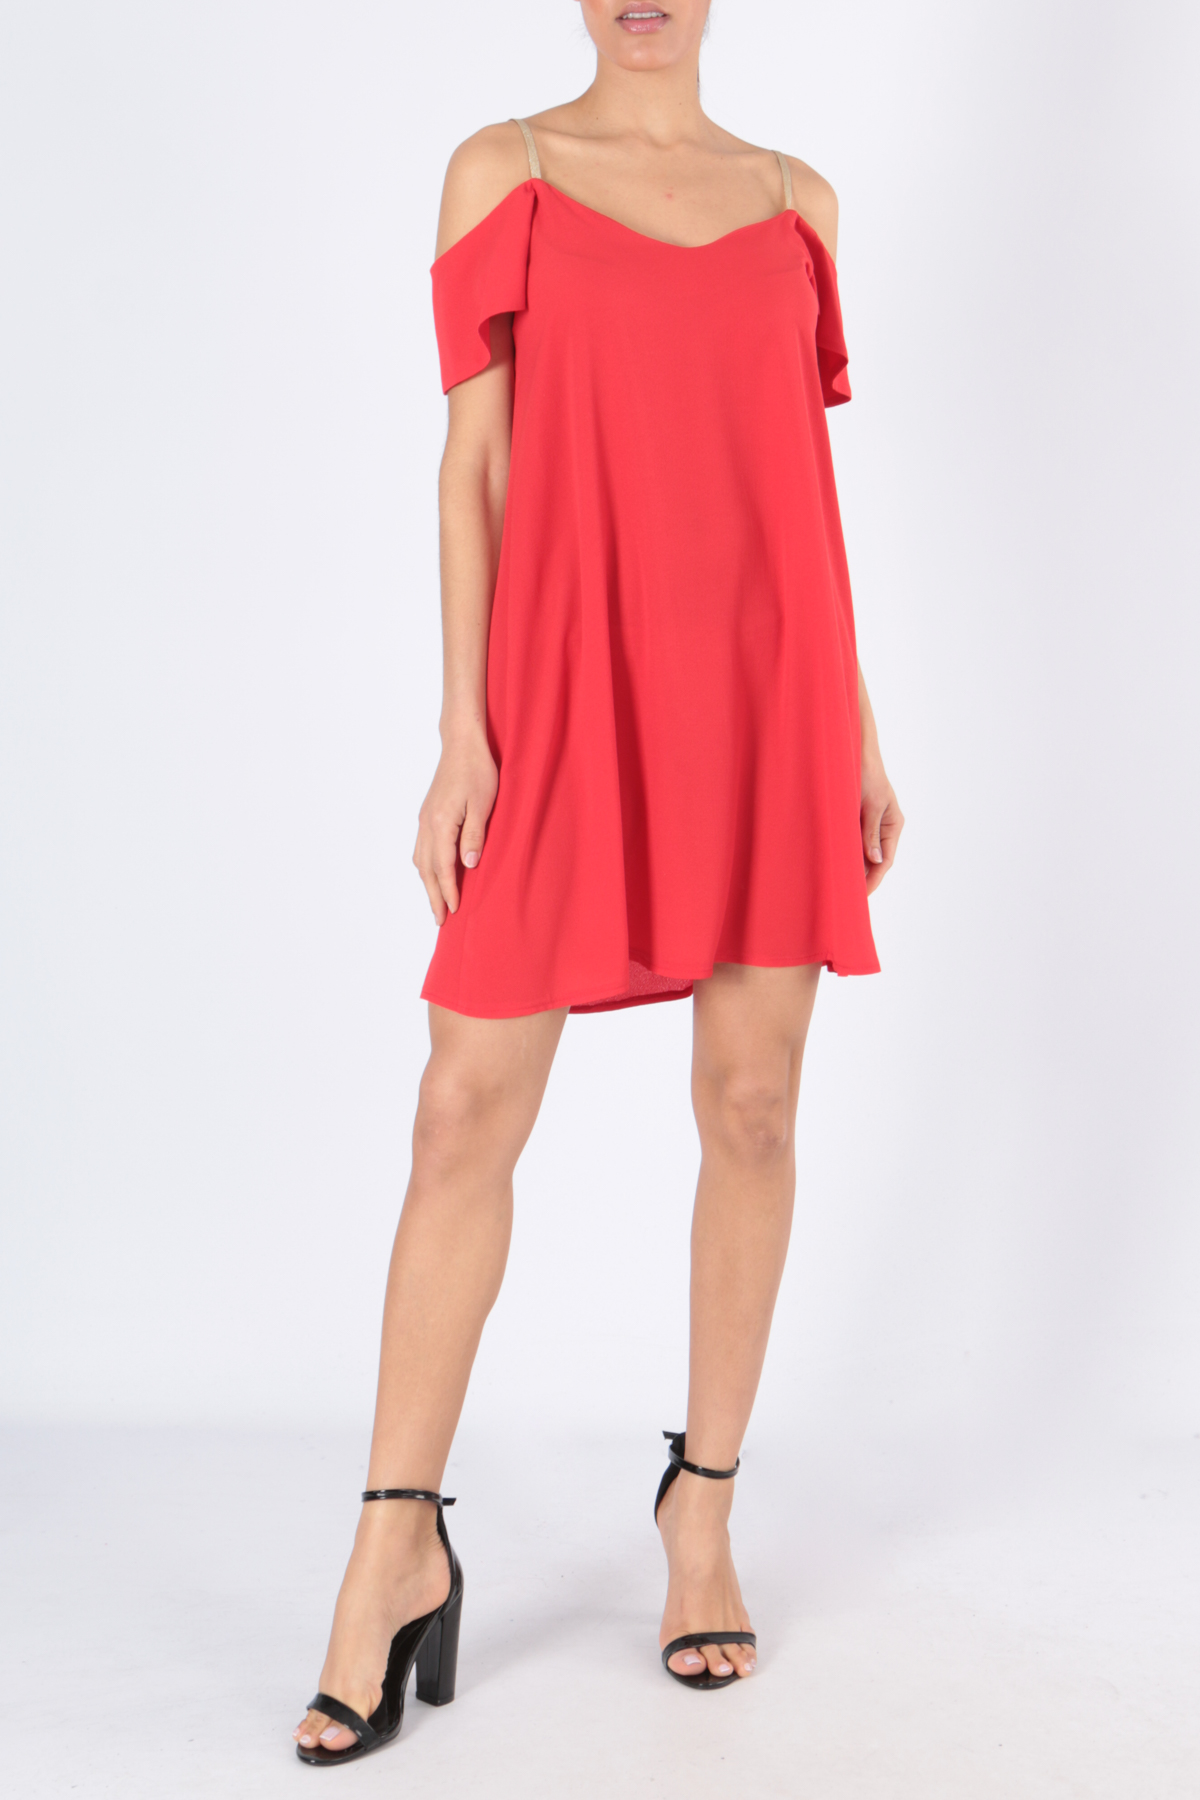 Robes courtes Femme ROBE BOA-ROUGE Charming Girl By Silia